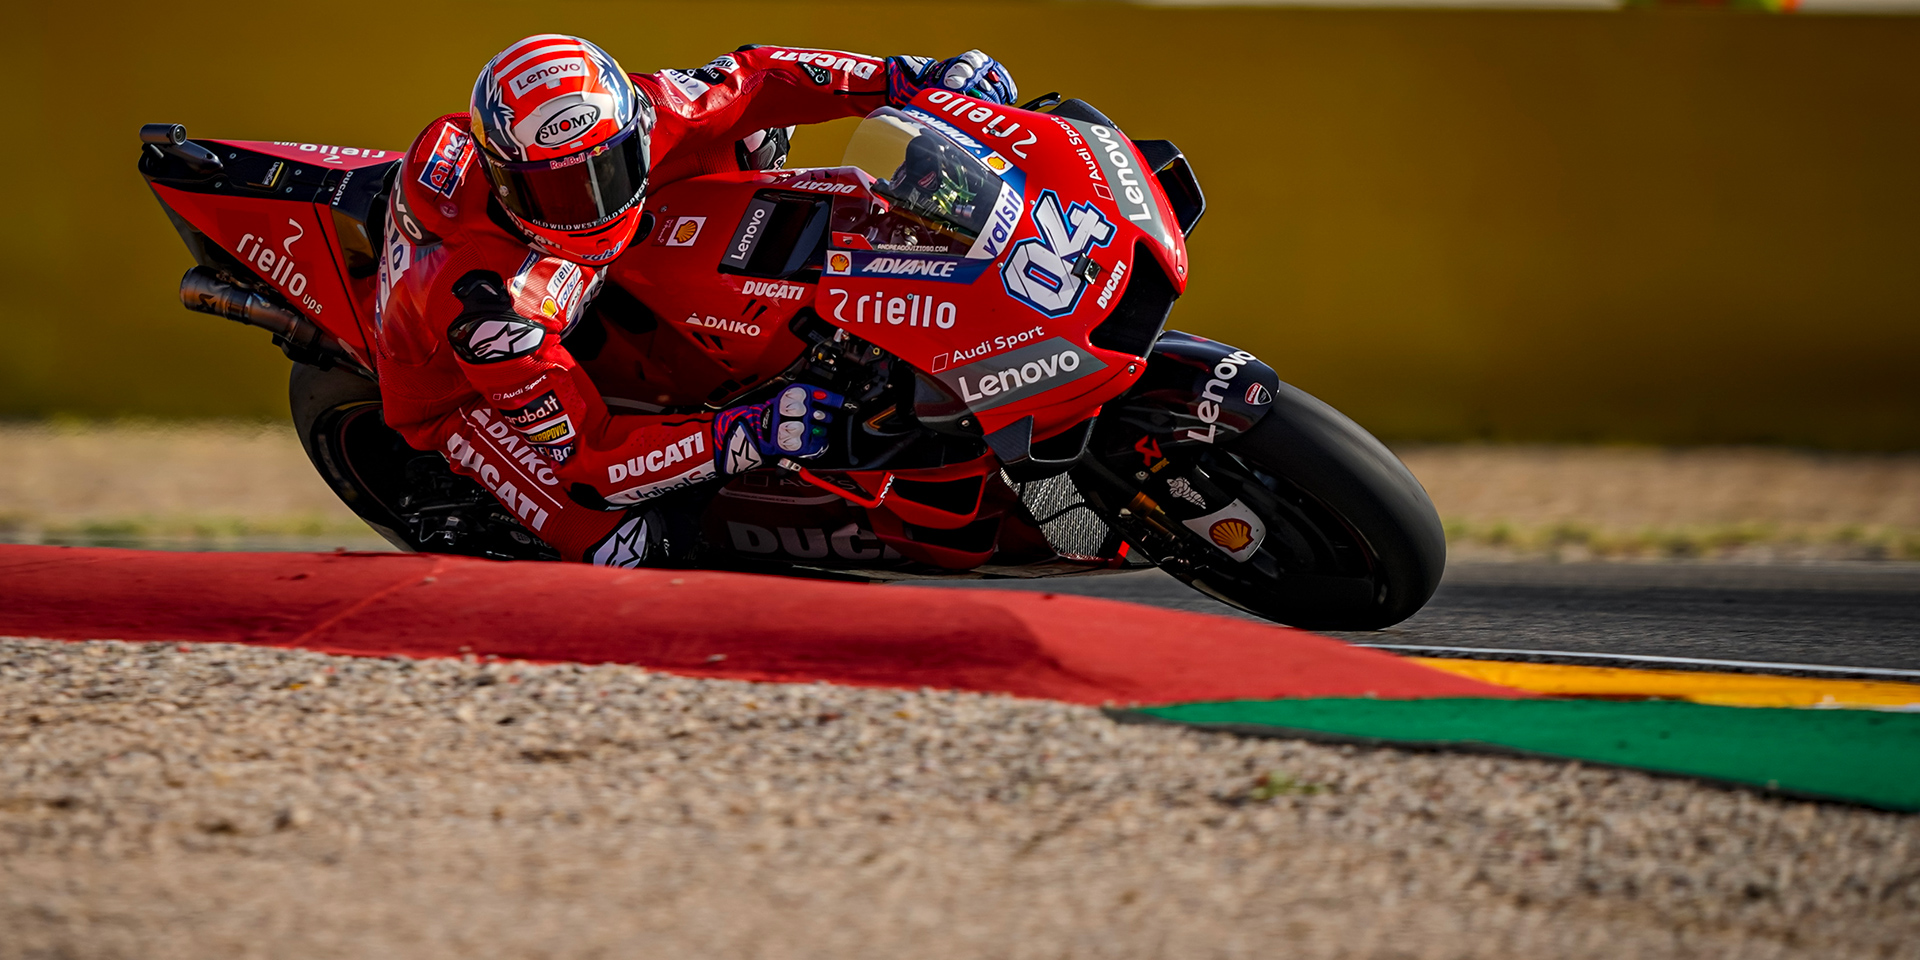 Fourth and fifth row starts for the Ducati Team riders after qualifying for the Gran Premio Michelin de Aragón: Andrea Dovizioso tenth and Danilo Petrucci fifteenth at the MotorLand circuit